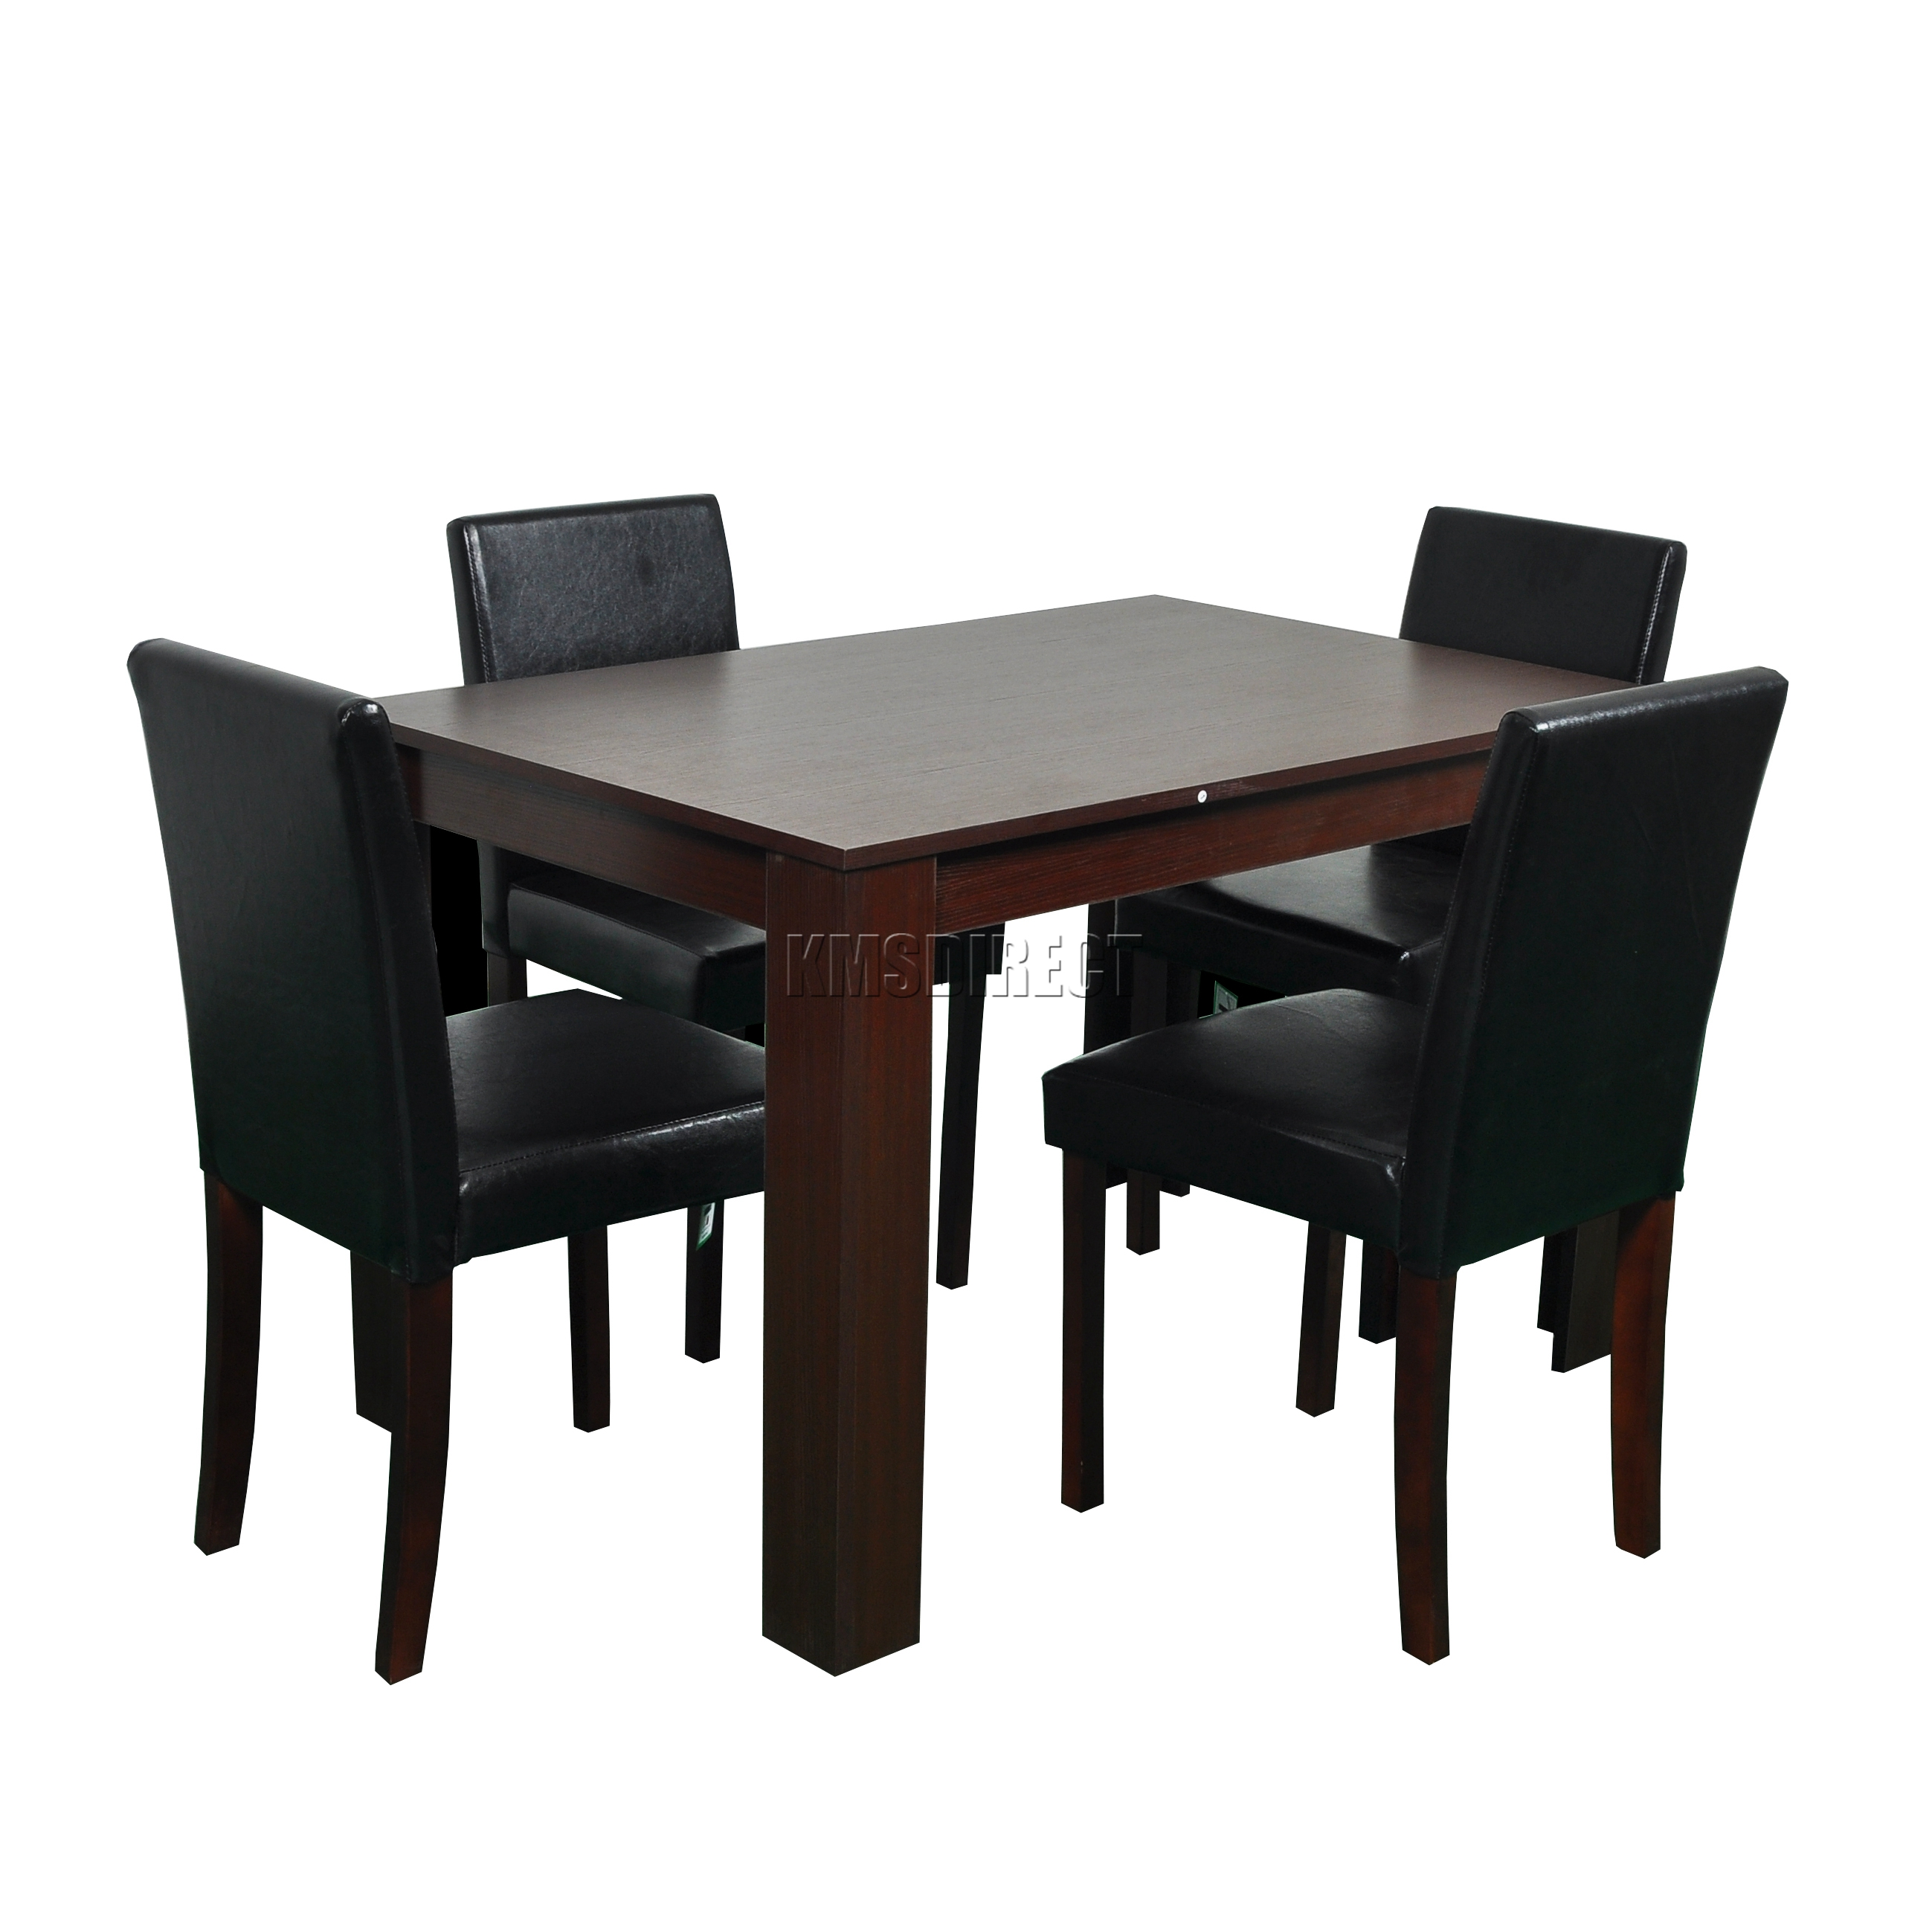 Dining Chairs Set Brown Faux Leather Modern Style Walnut: WestWood Wooden Dining Table And 4 Or 6 PU Faux Leather